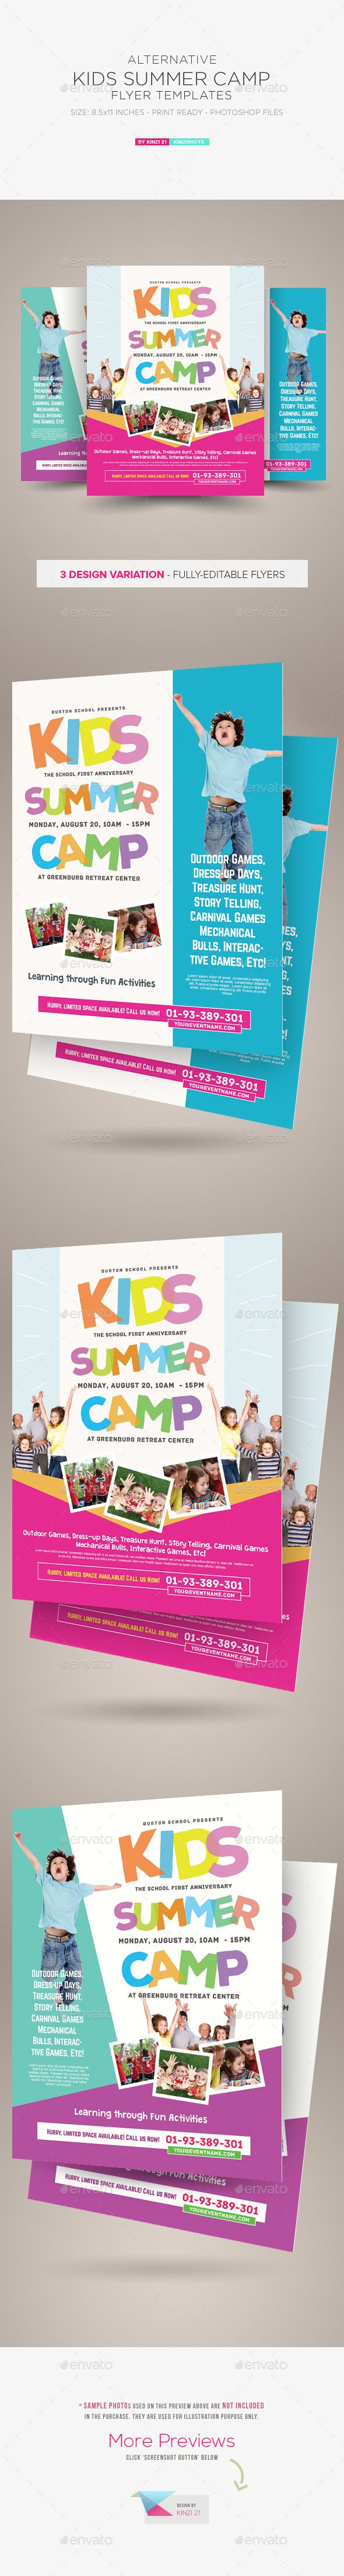 Advertising Poster Templates Glamorous Kids Summer Camp Flyer Templates  Flyer Template Template And Camping